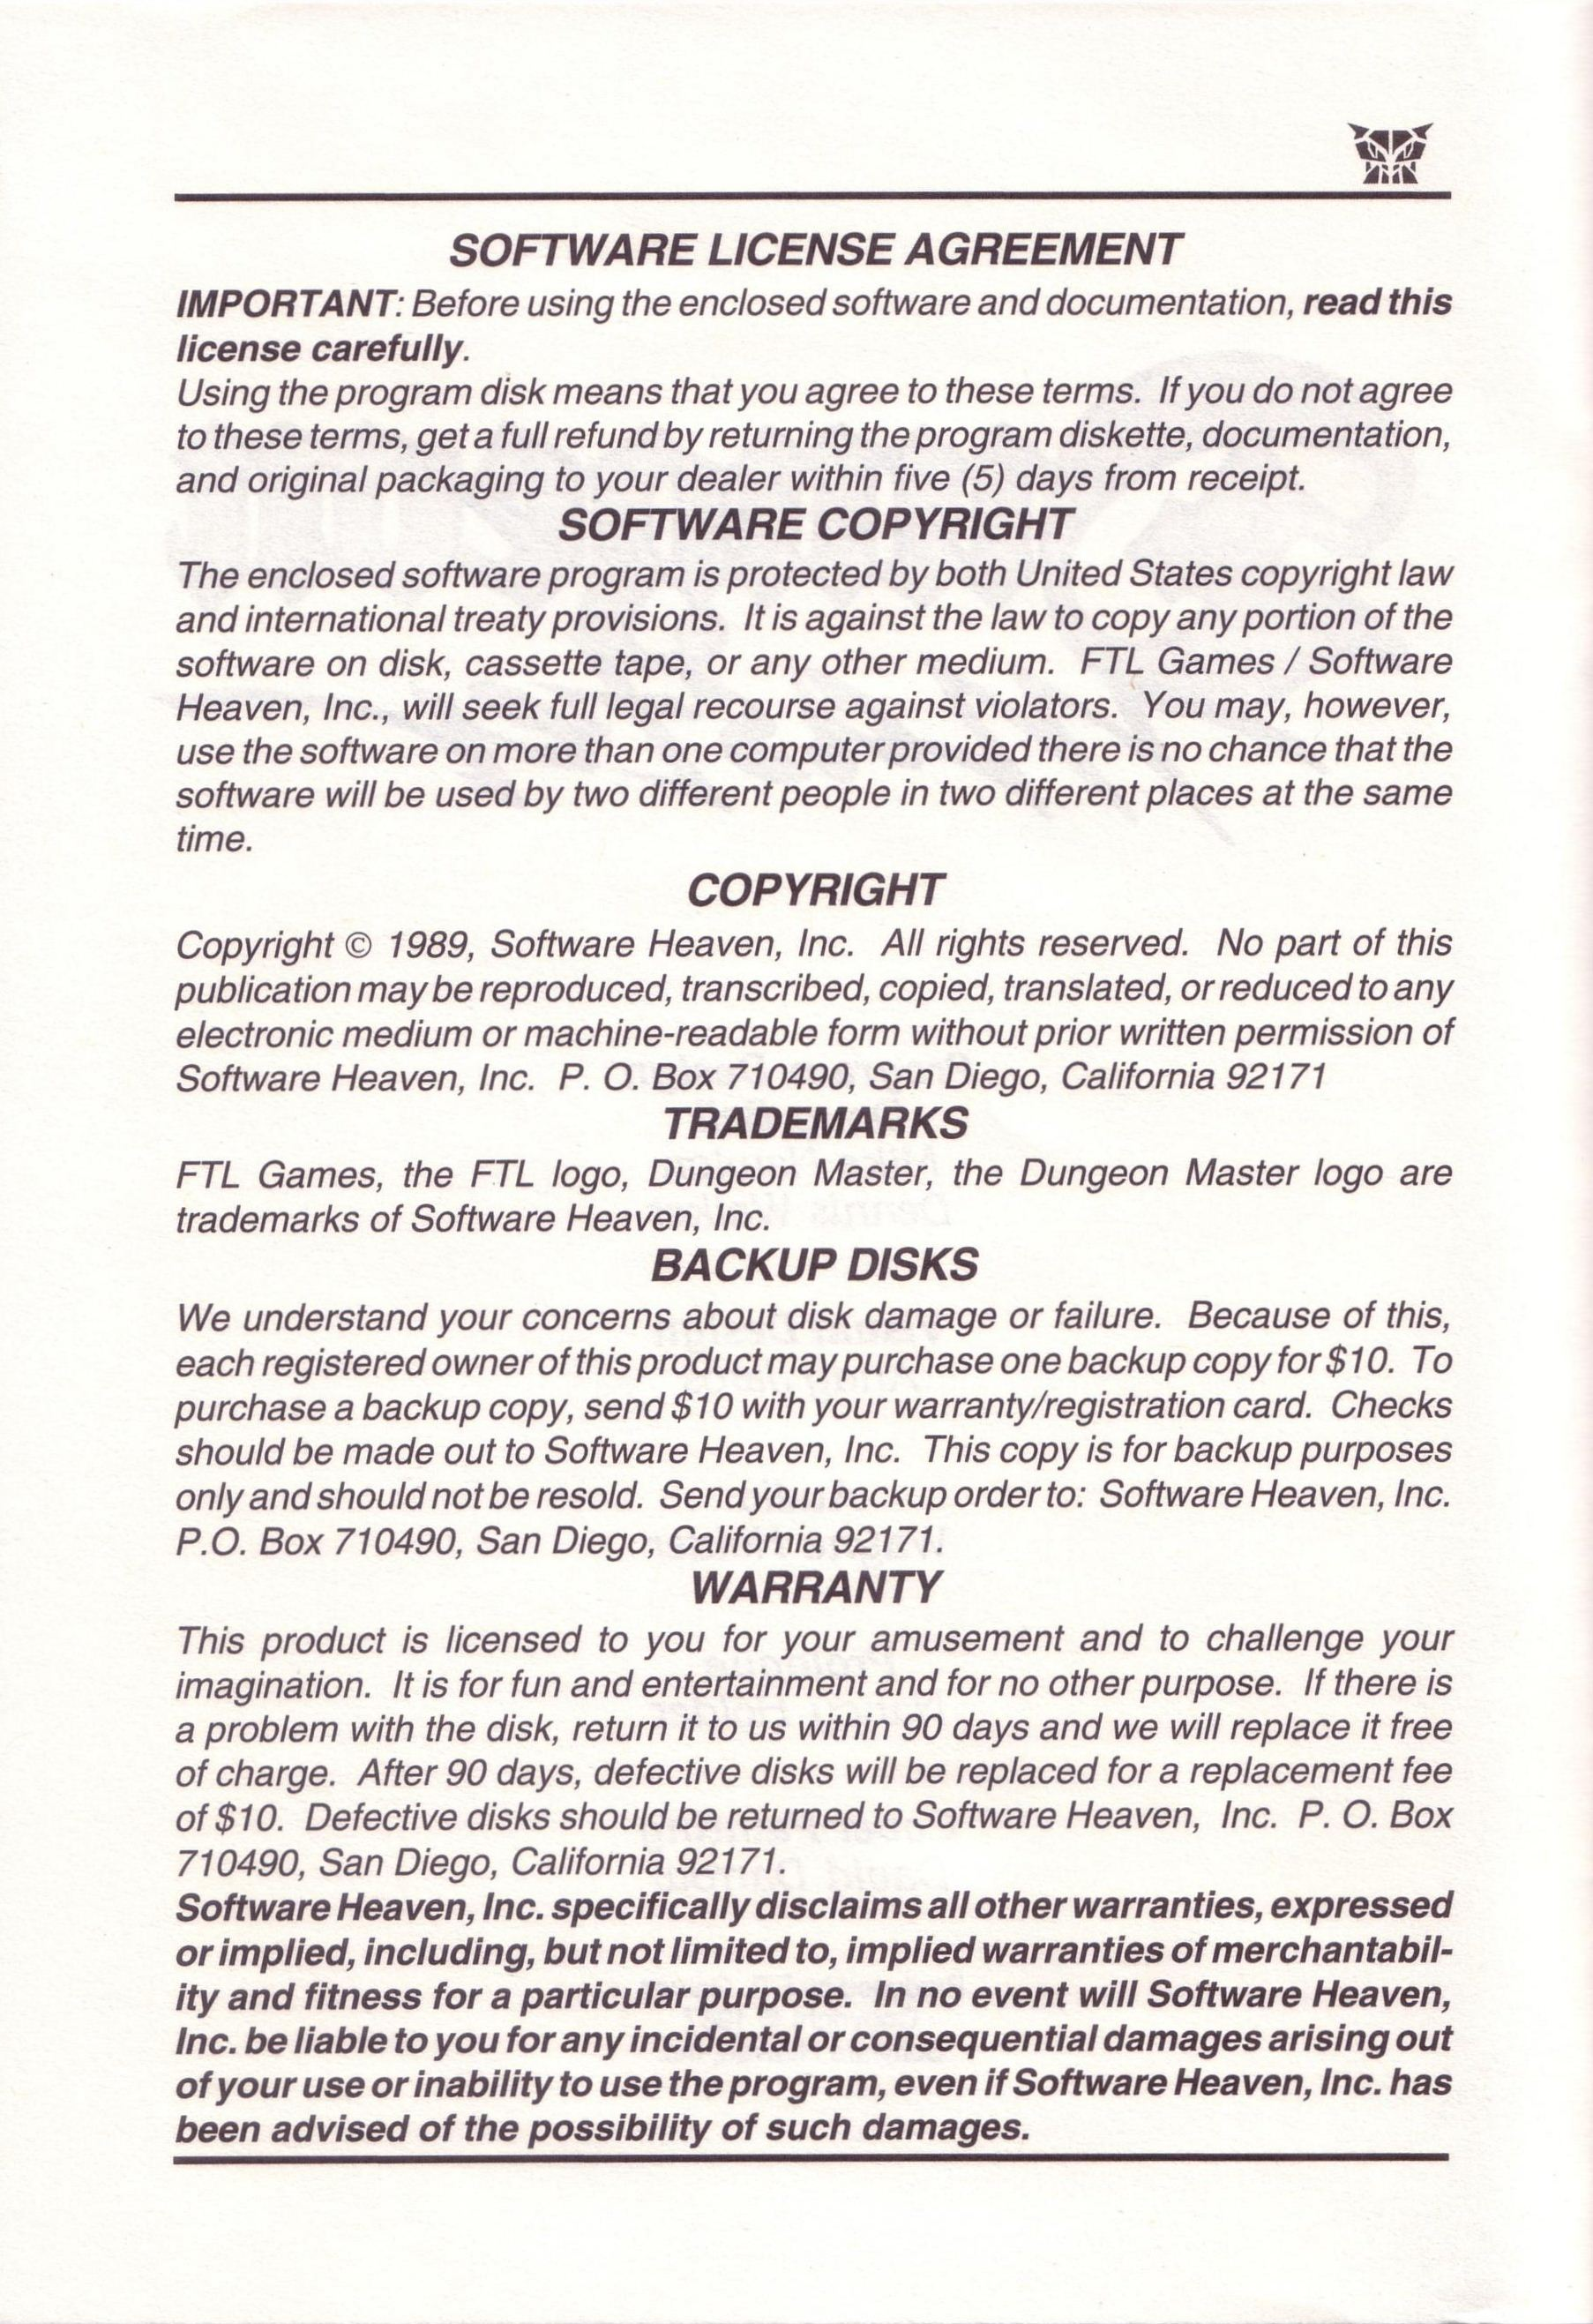 Dungeon Master for PC with FTL Sound Adapter (US Release) - Manual Page 04